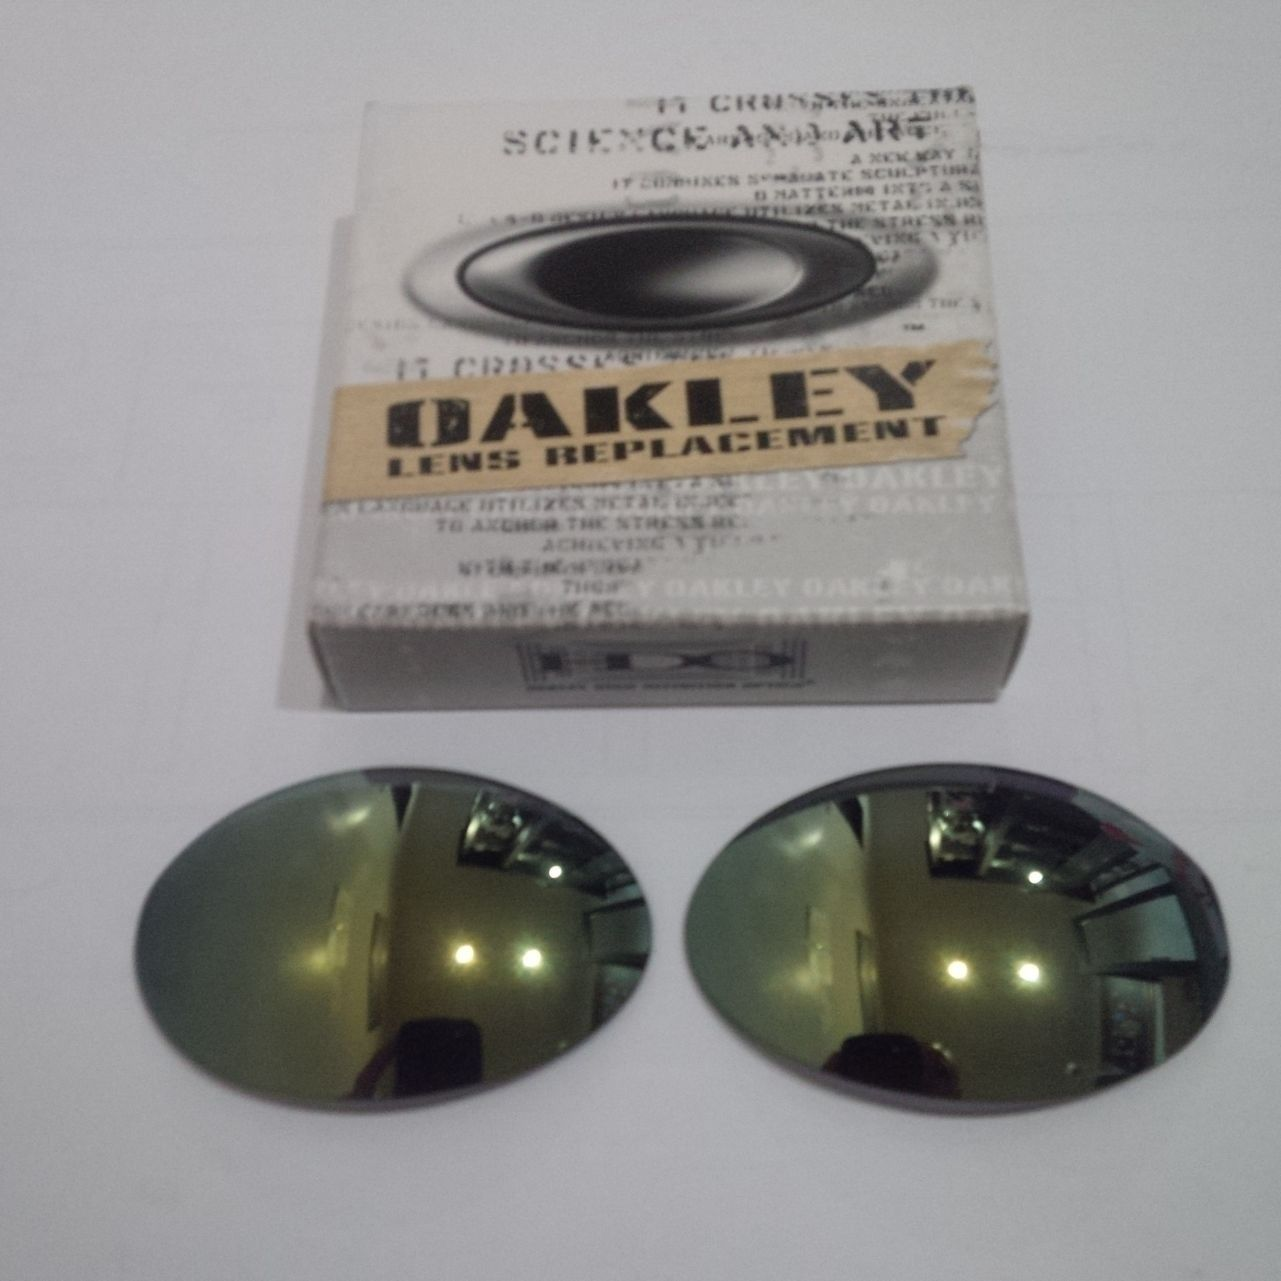 Custom cut replacement lens oakley donor for xmetals - IMG-20150709-WA0004.jpg